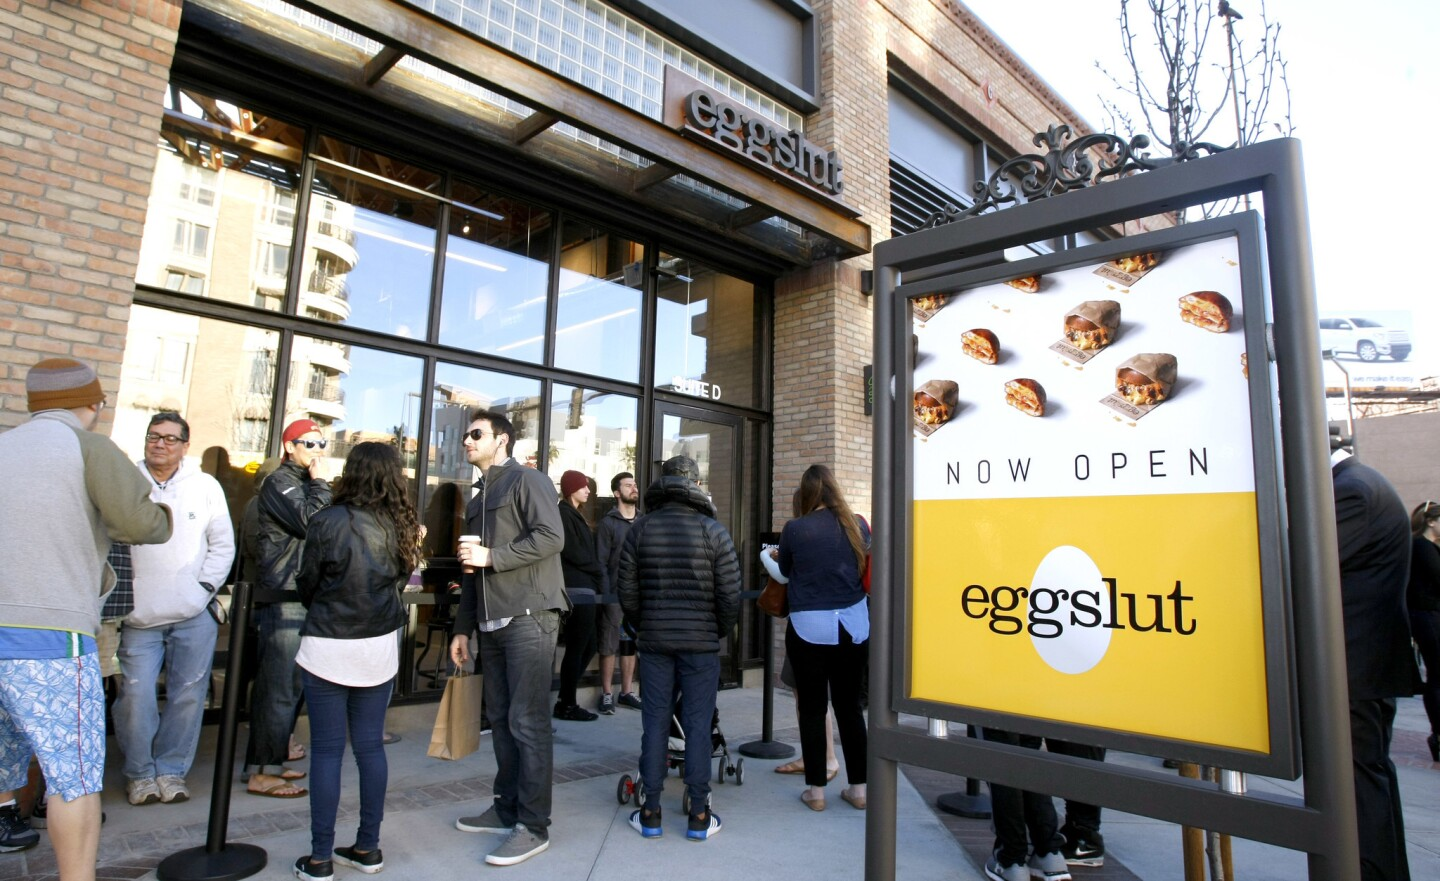 Customers line up to be among the first to eat at the new Eggslut eatery on Brand Blvd. in Glendale, on Thursday, March 23, 2017.